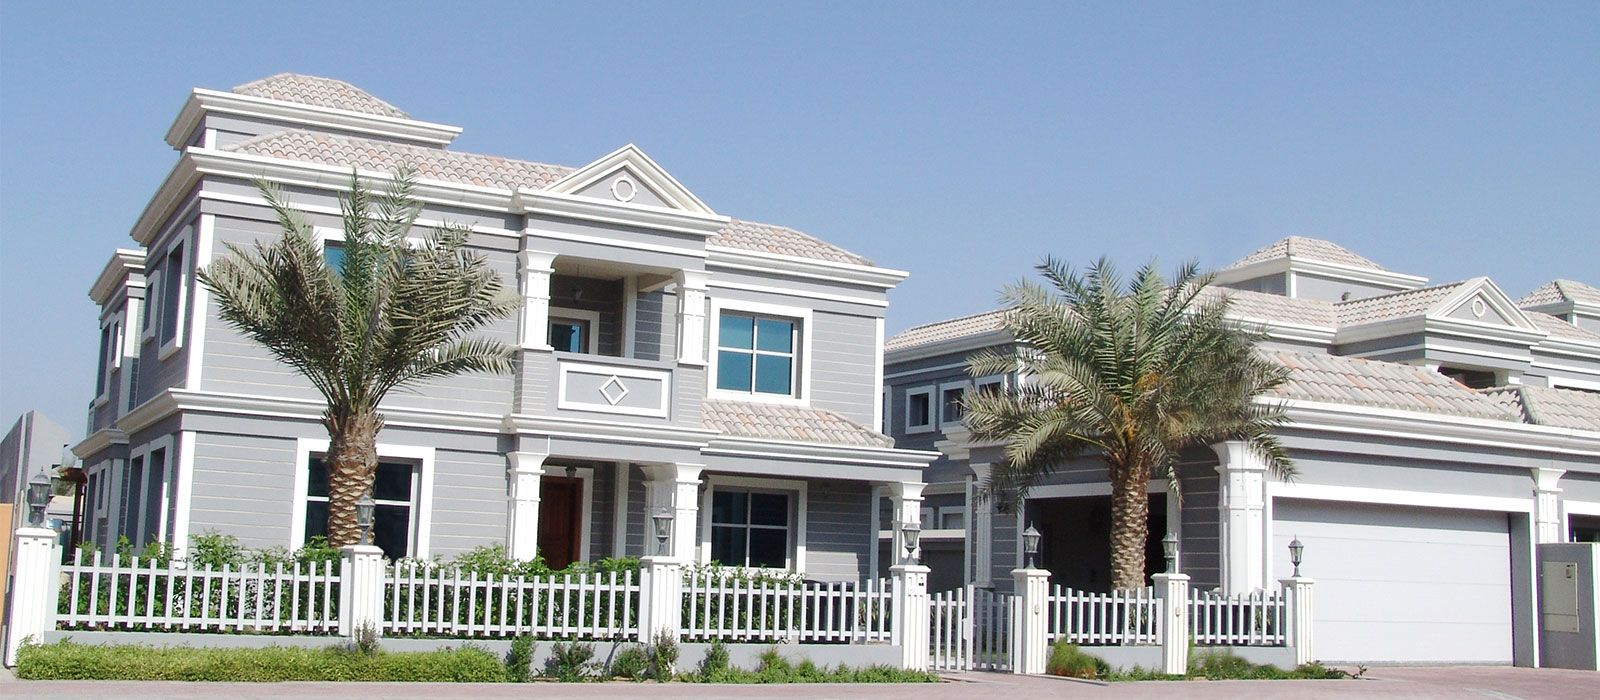 4 320 2 Beautiful houses in dubai pictures